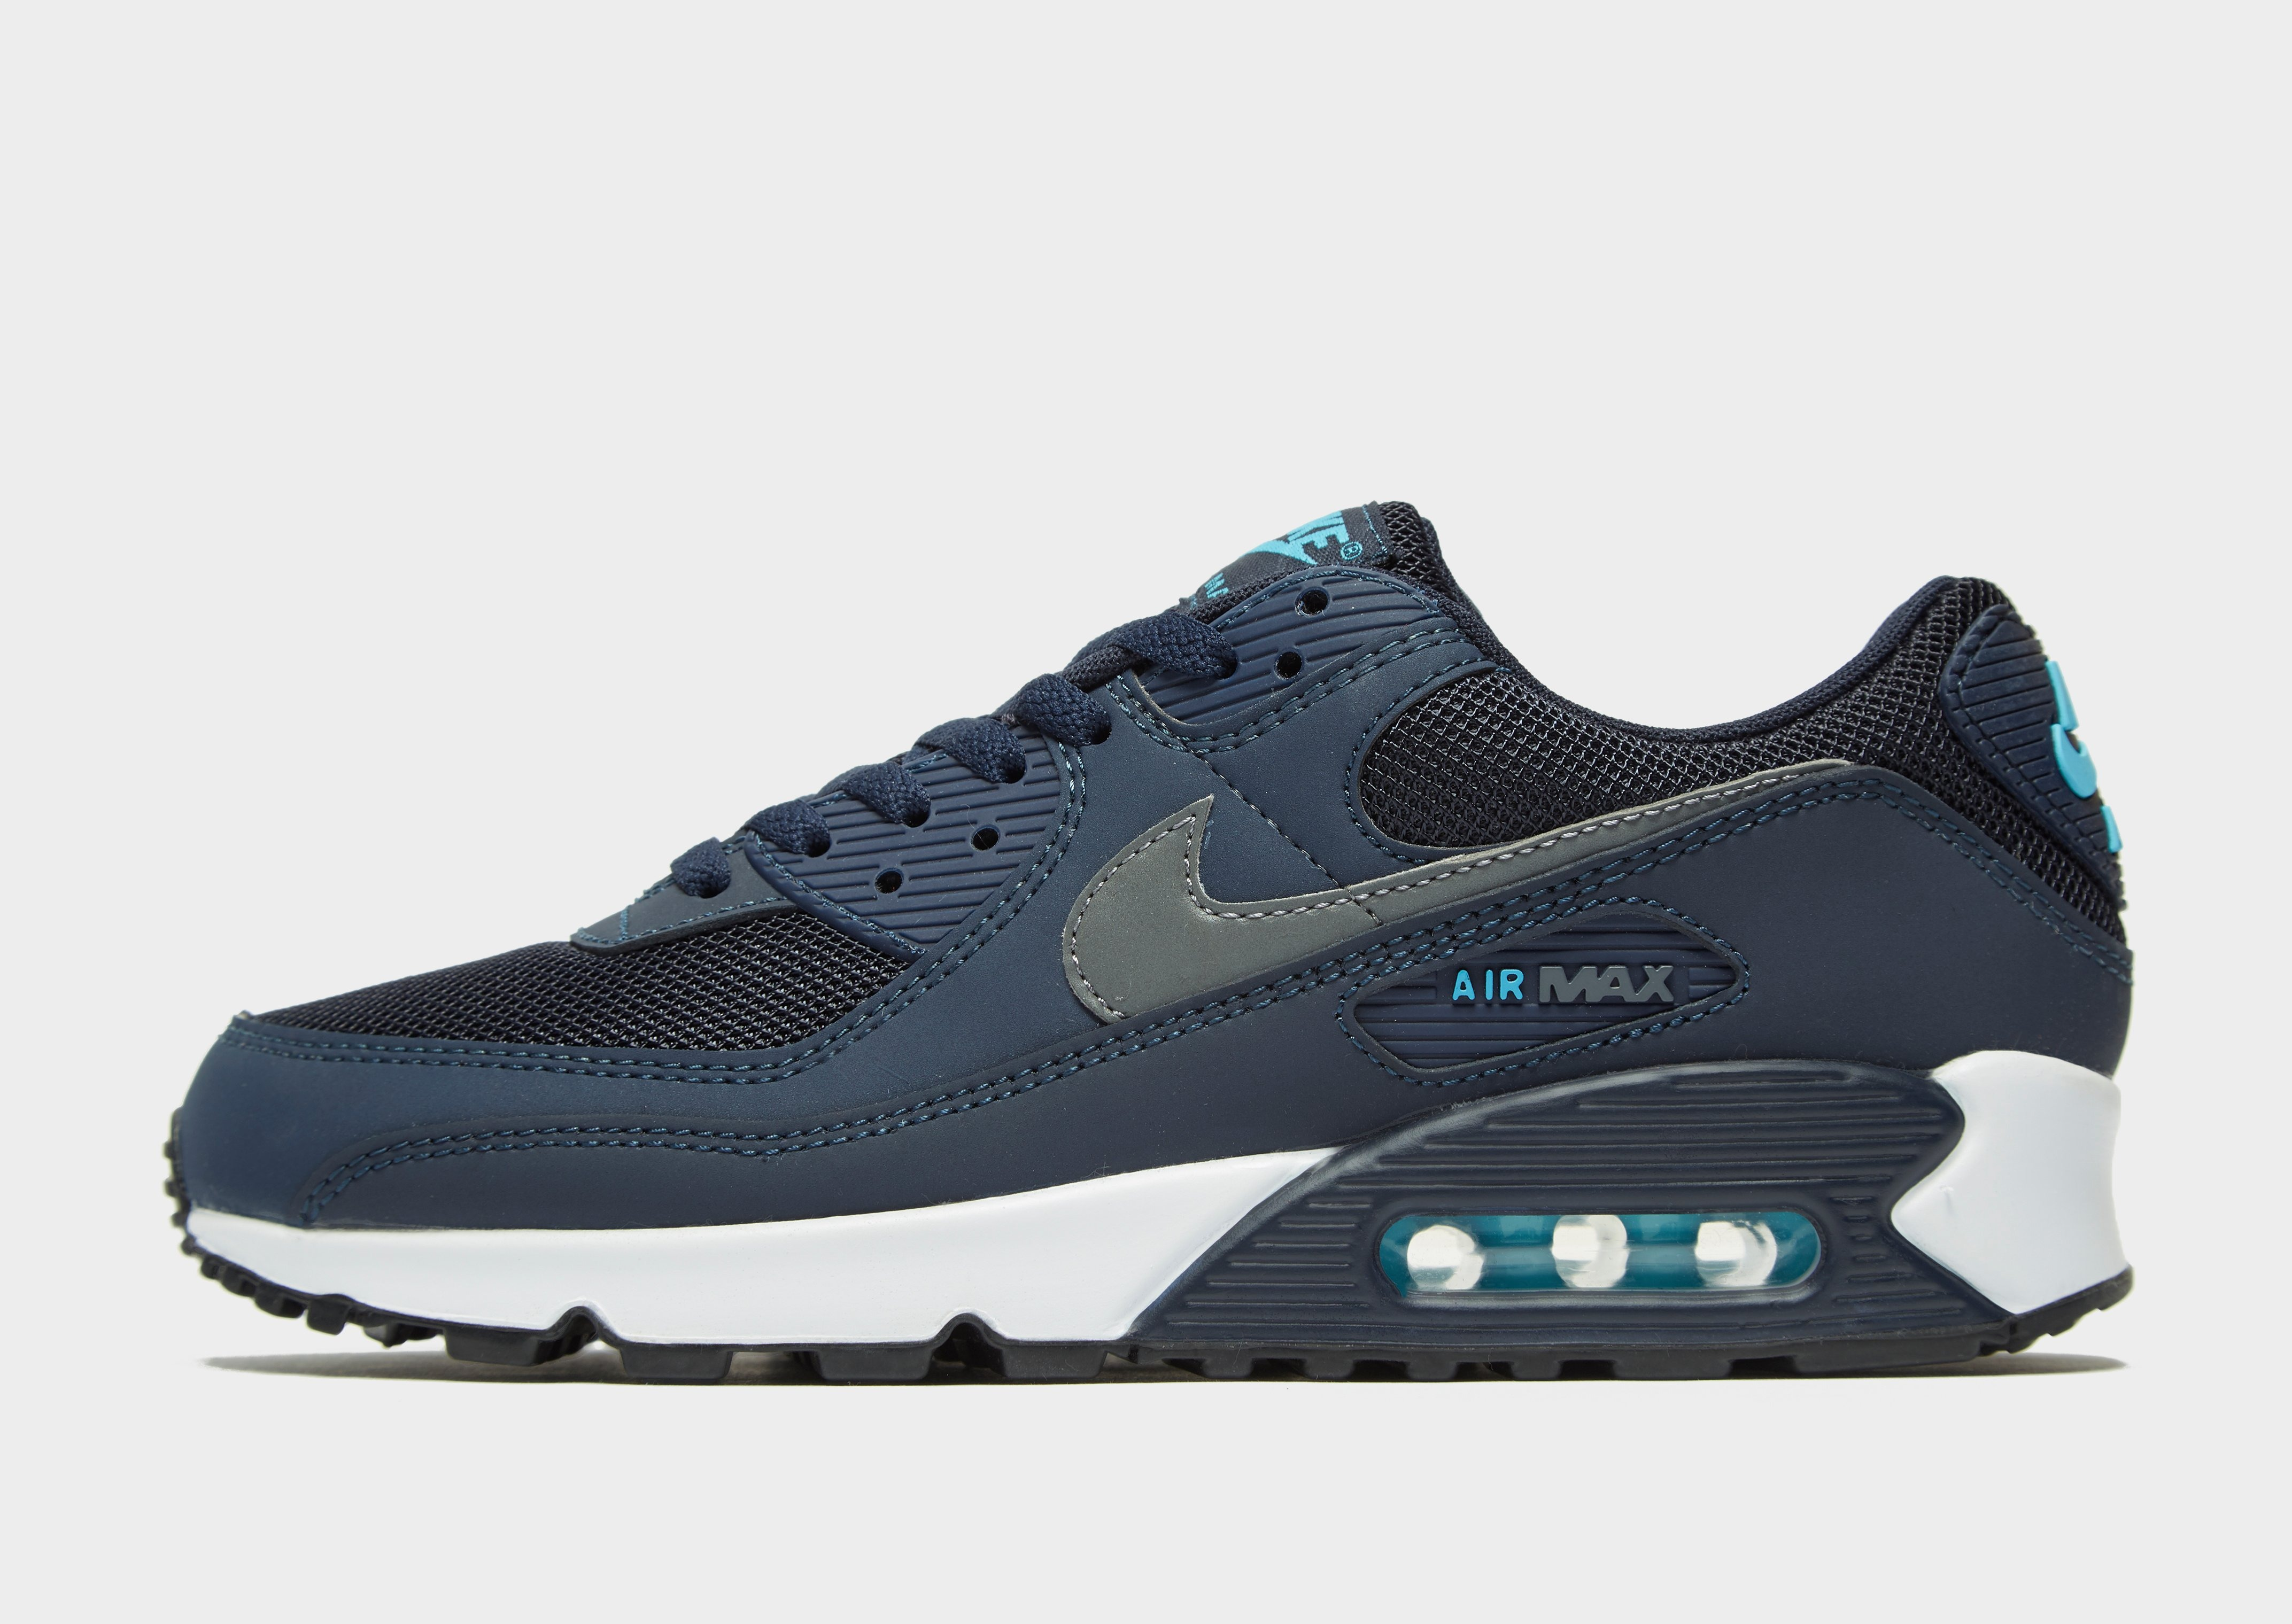 nike air max donker blauw dames